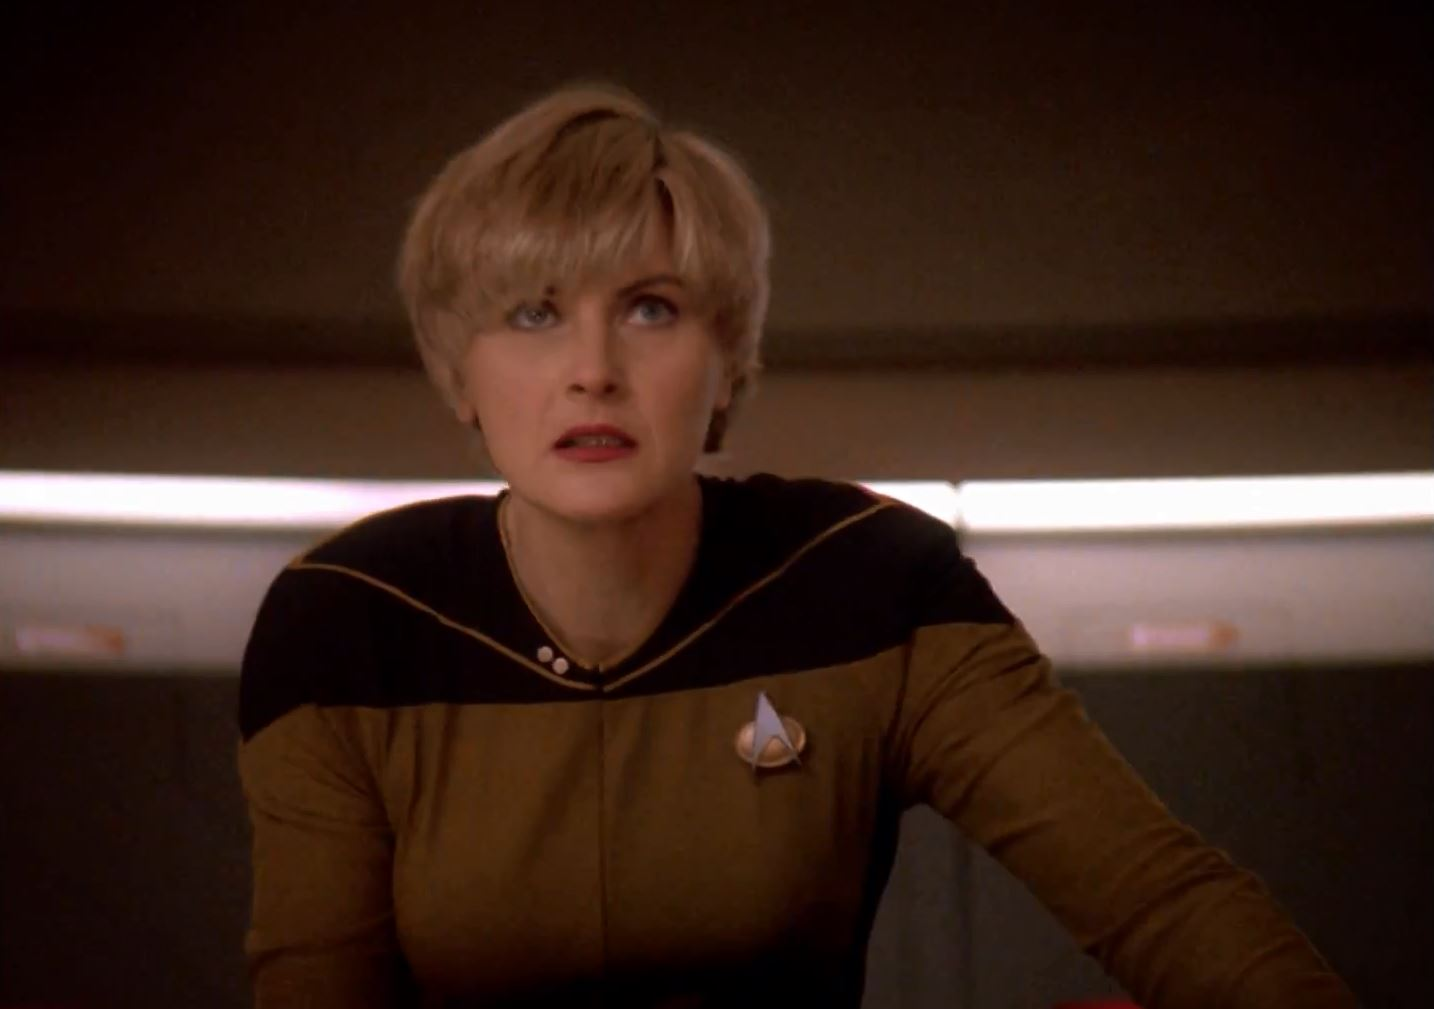 Star Trek TNG Season 7 Blu-Ray Trailer - Denise Crosby as Tasha Yar in All Good Things